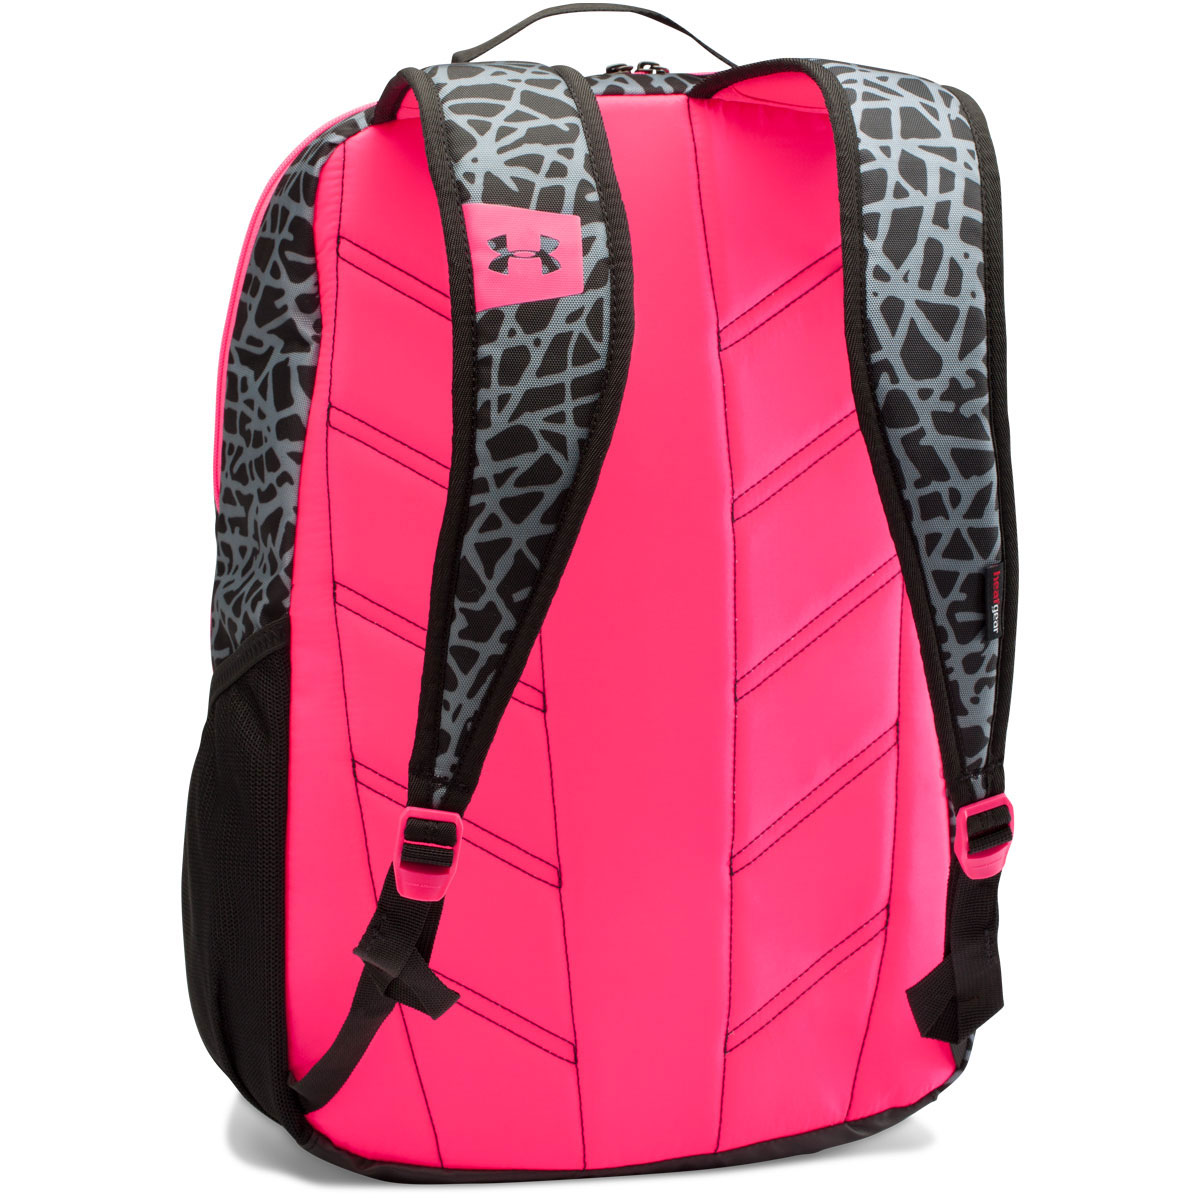 9e359d02f5 Under Armour 2019 UA Hustle Backpack LDWR Rucksack School Gym Bag